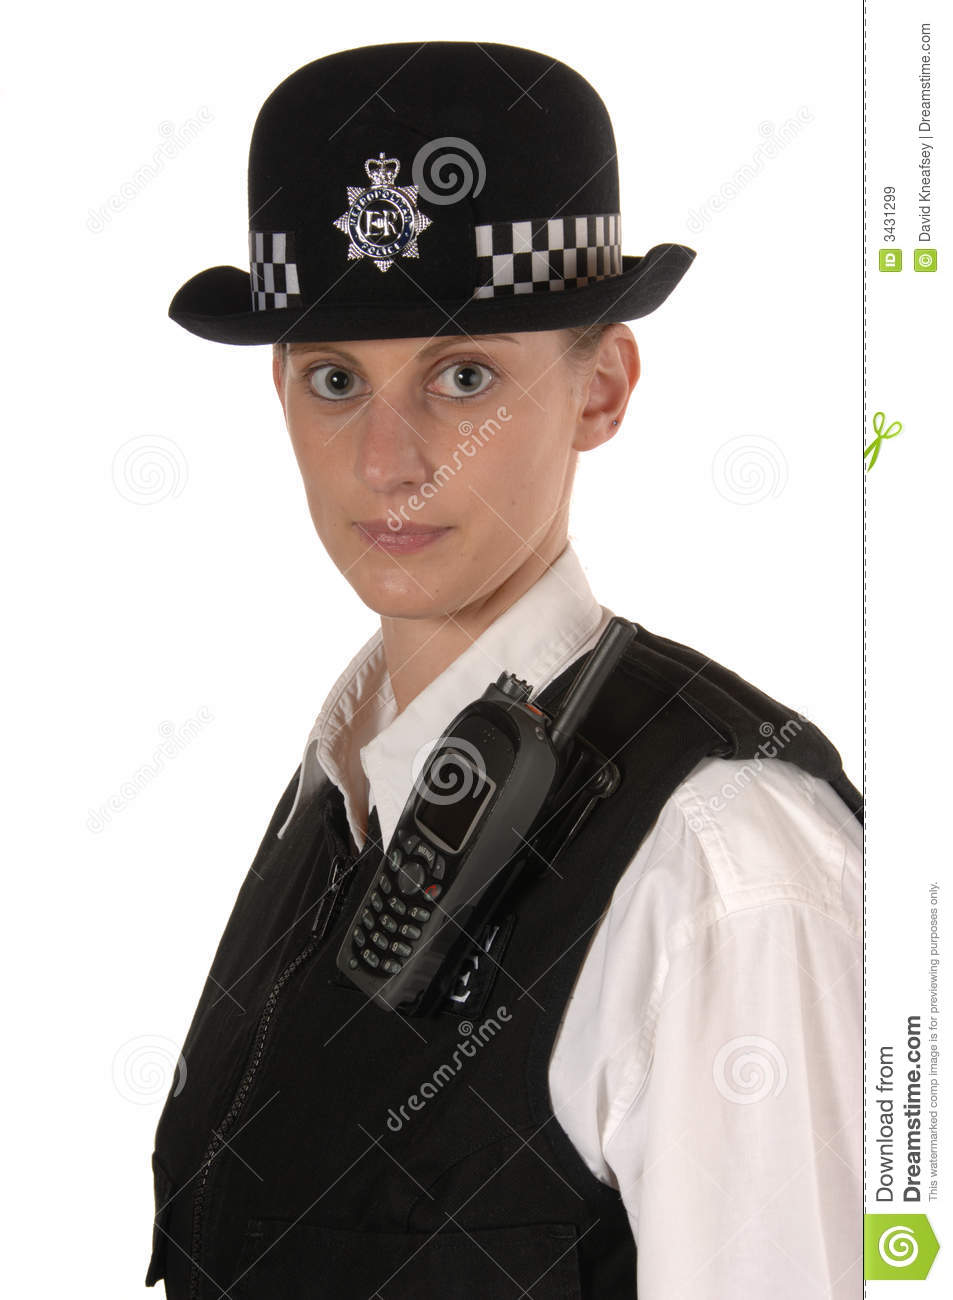 Female Uk Police Officer Royalty Free Stock Images Image